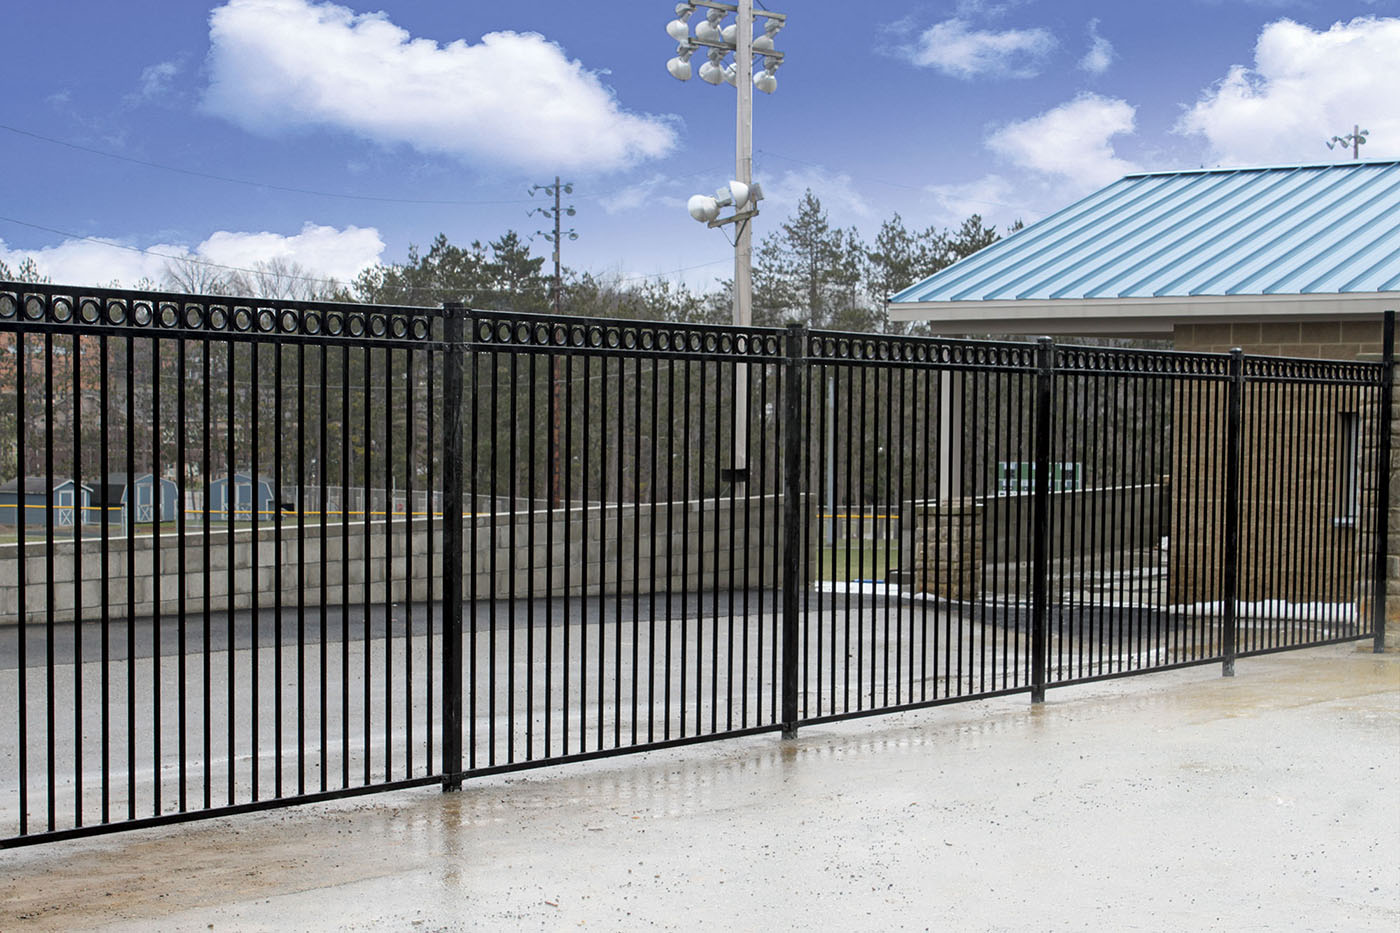 commericial insustrial chain link aluminum privacy oil-gas fence sports fencing baseball fencing